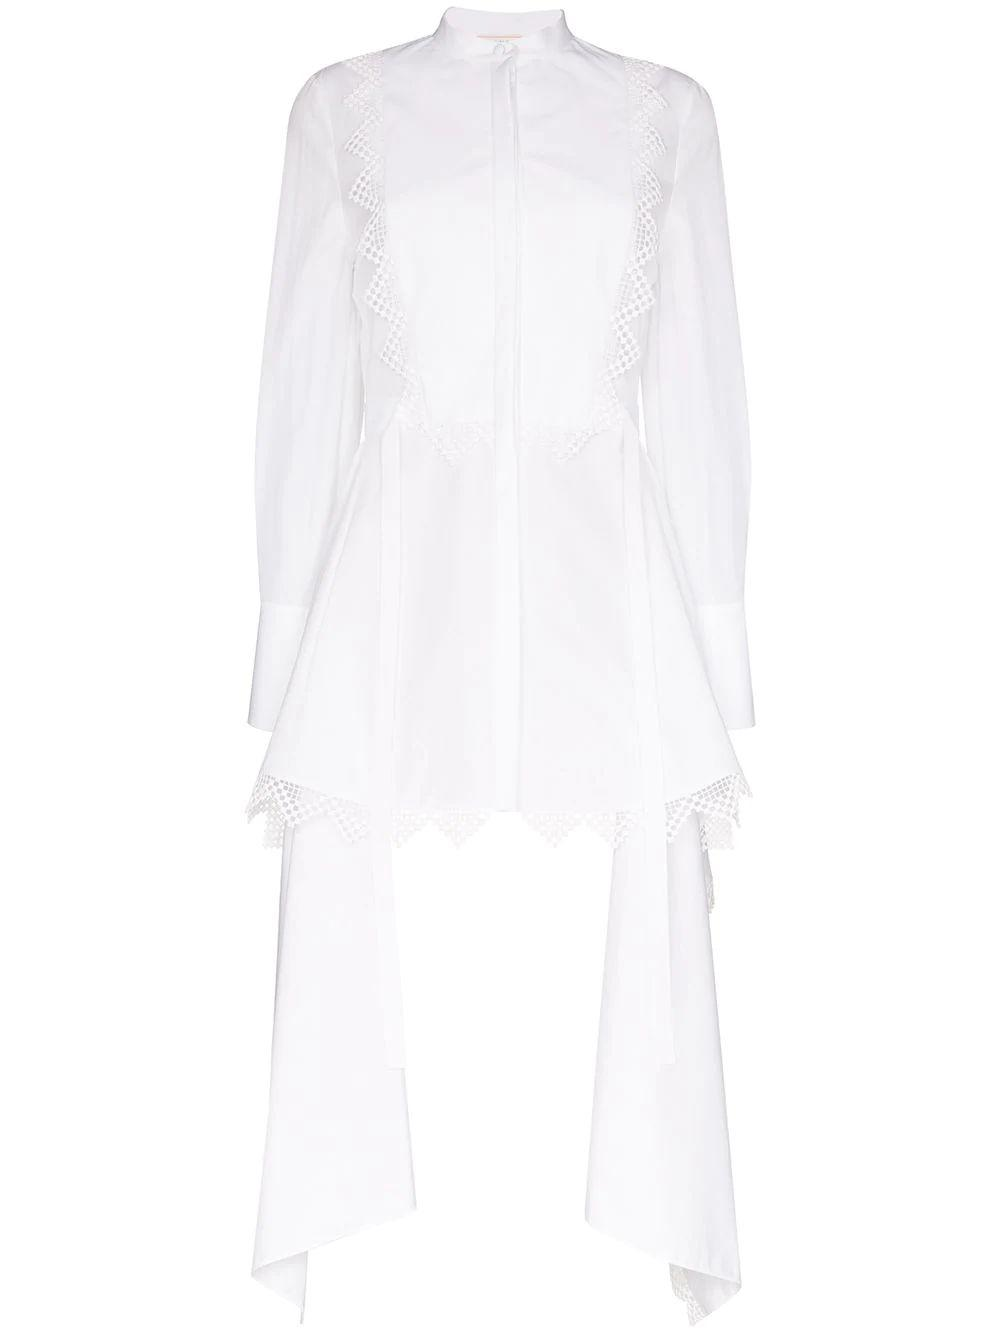 Cotton Blouse With Lace Tails Item # 617738QAAAD